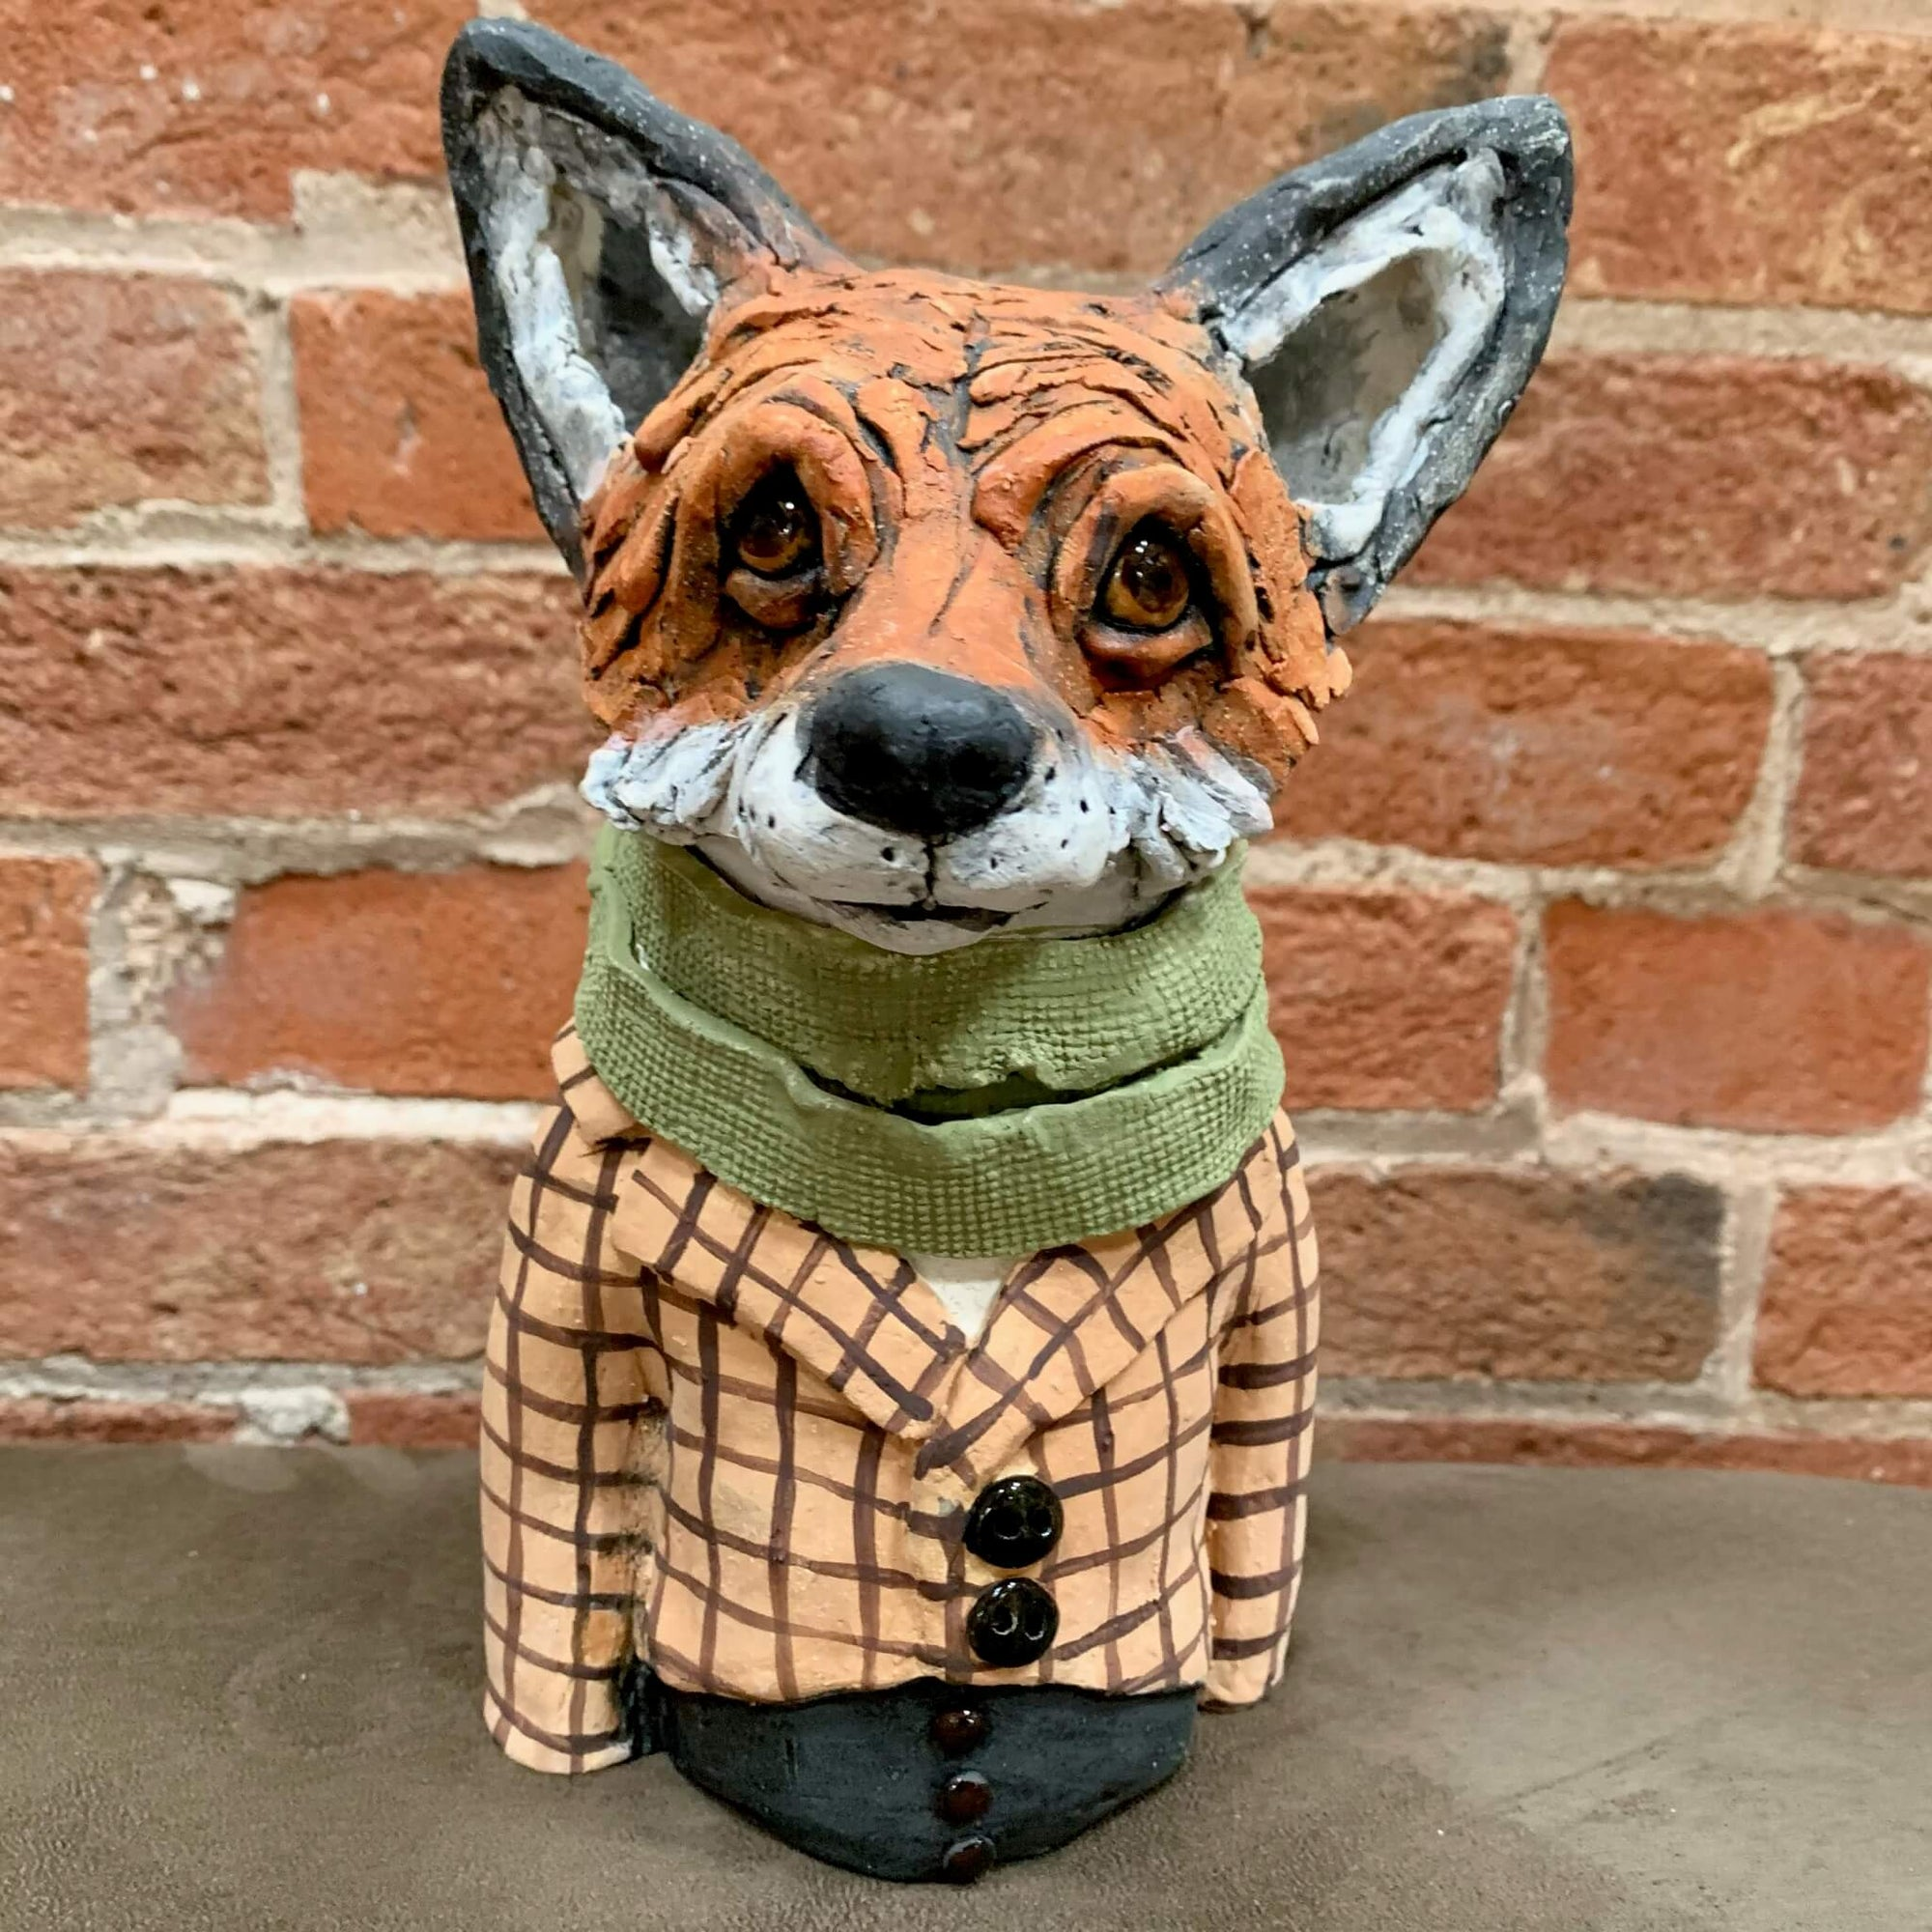 Ceramic Sculpture - Fantastic Mr Fox by Louise Brown